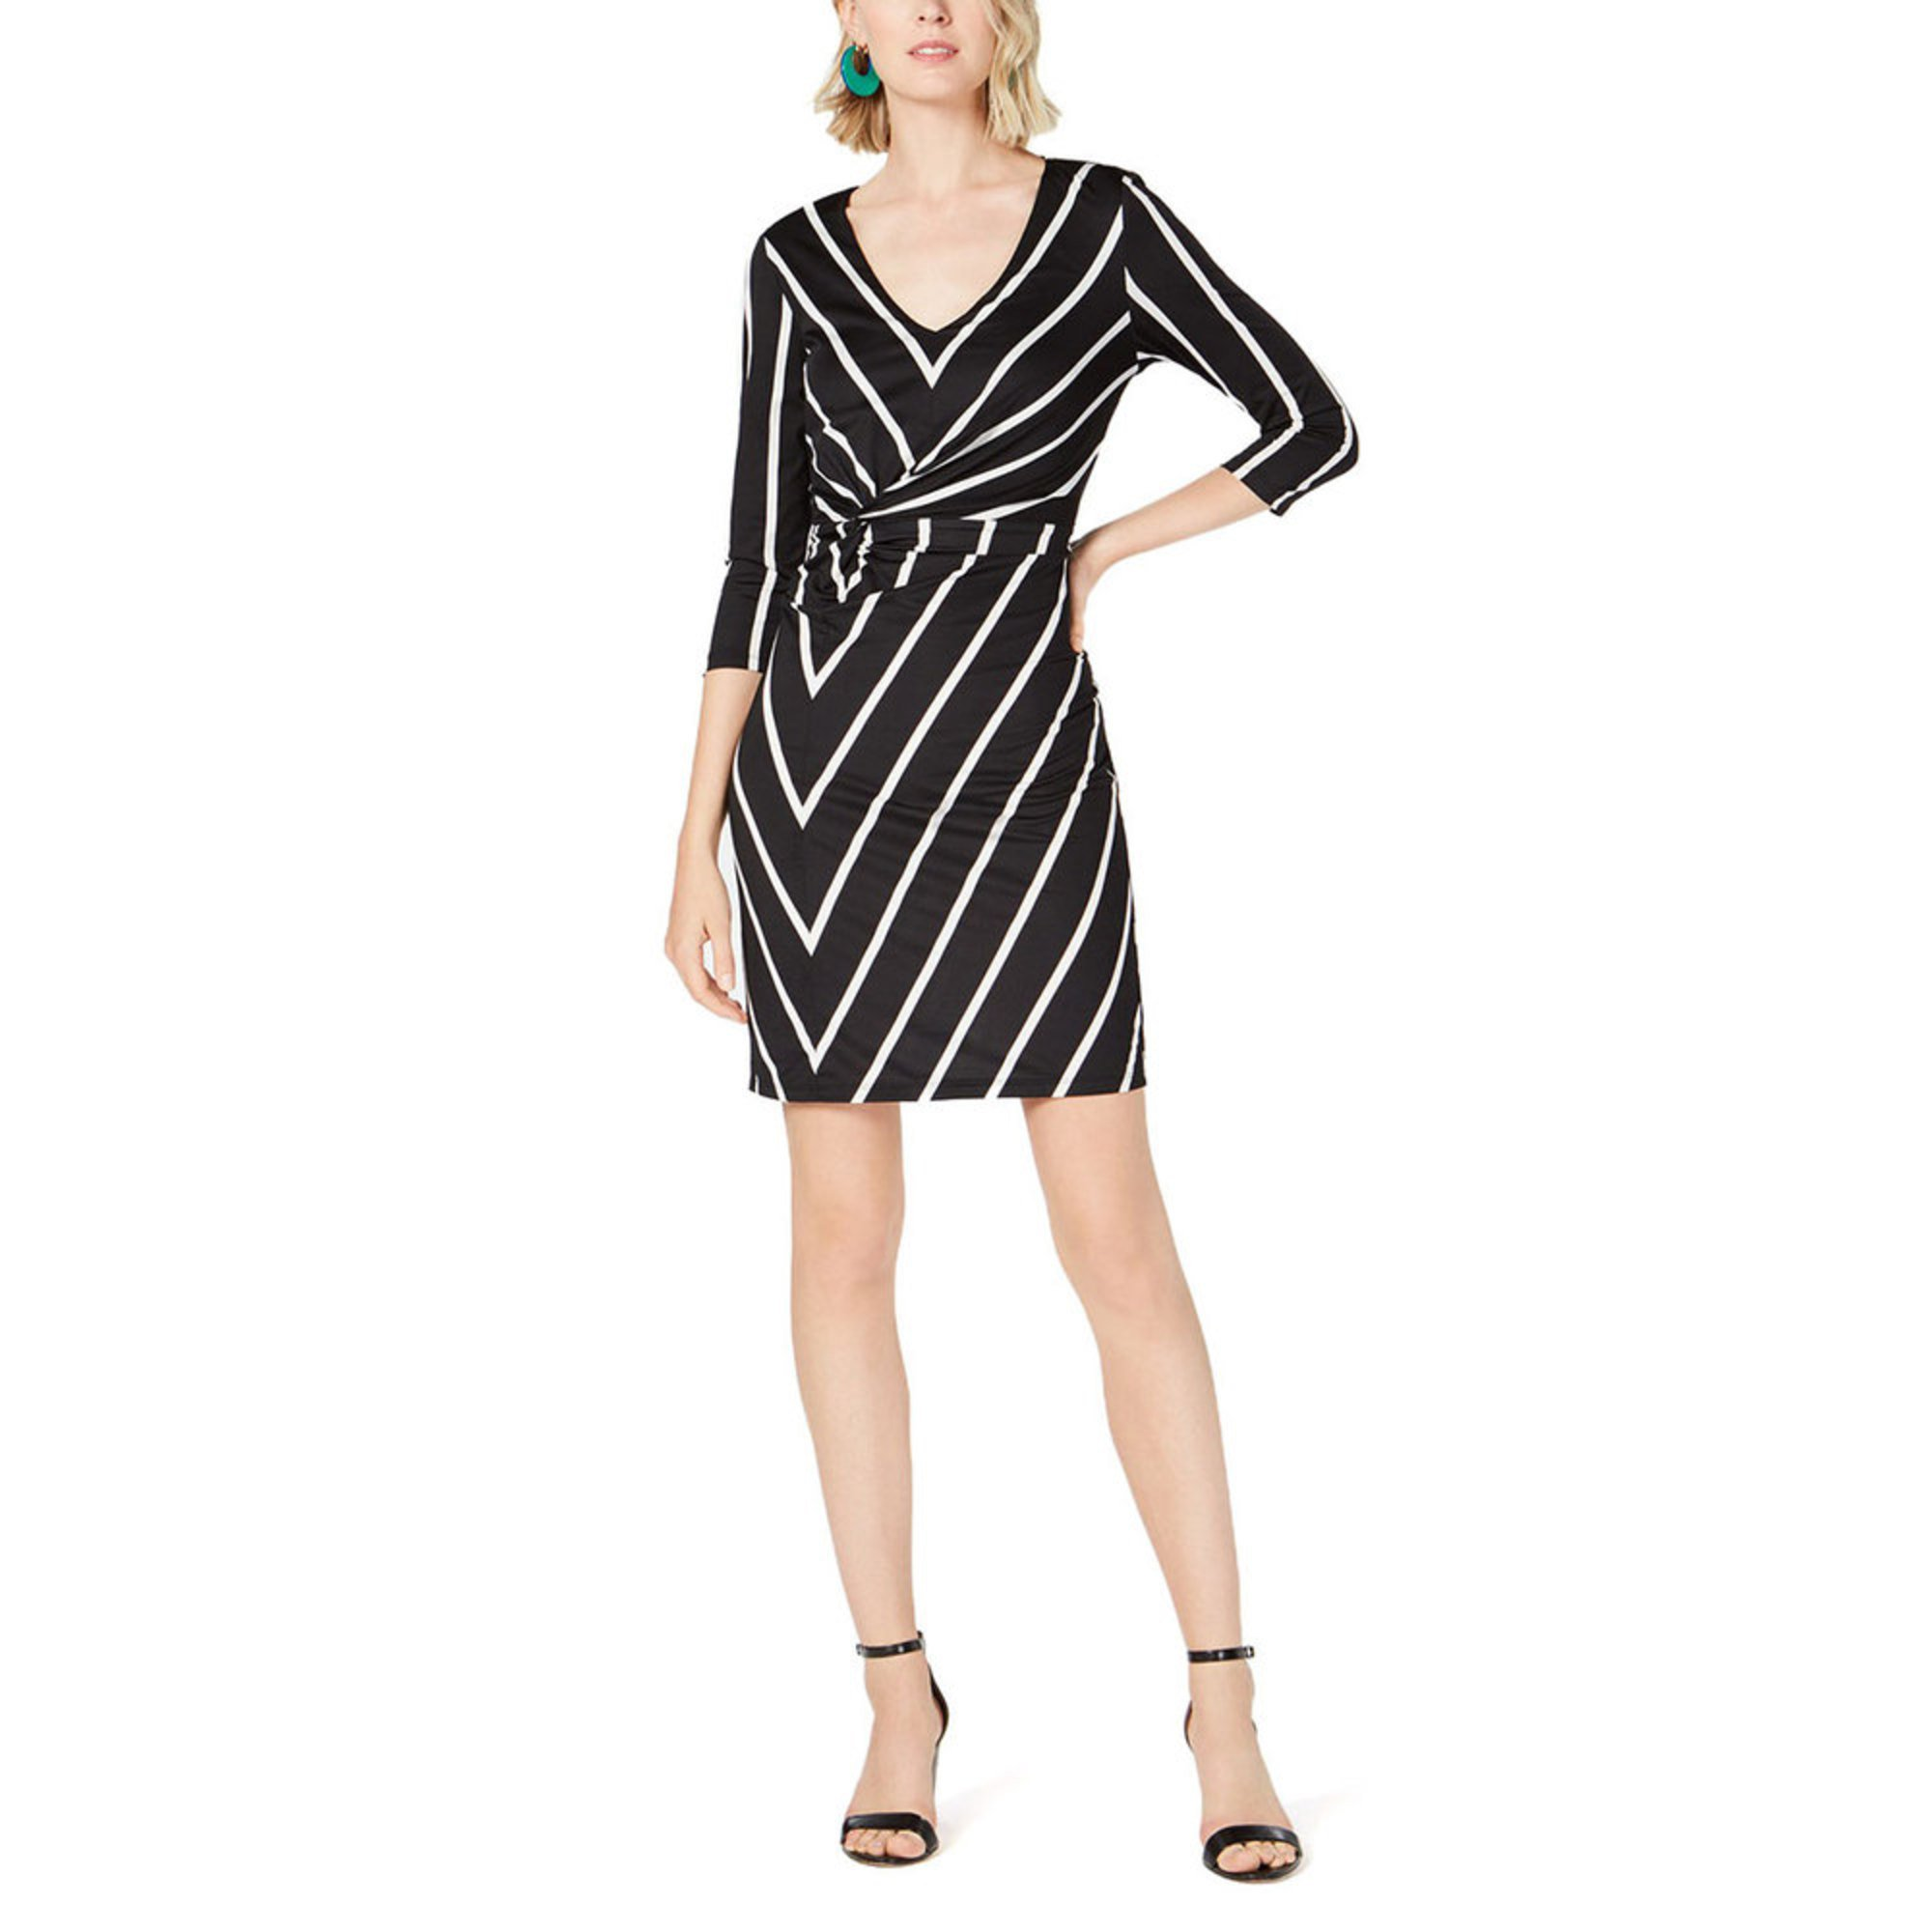 Inc International Concepts Womens Striped Twist Front Dress